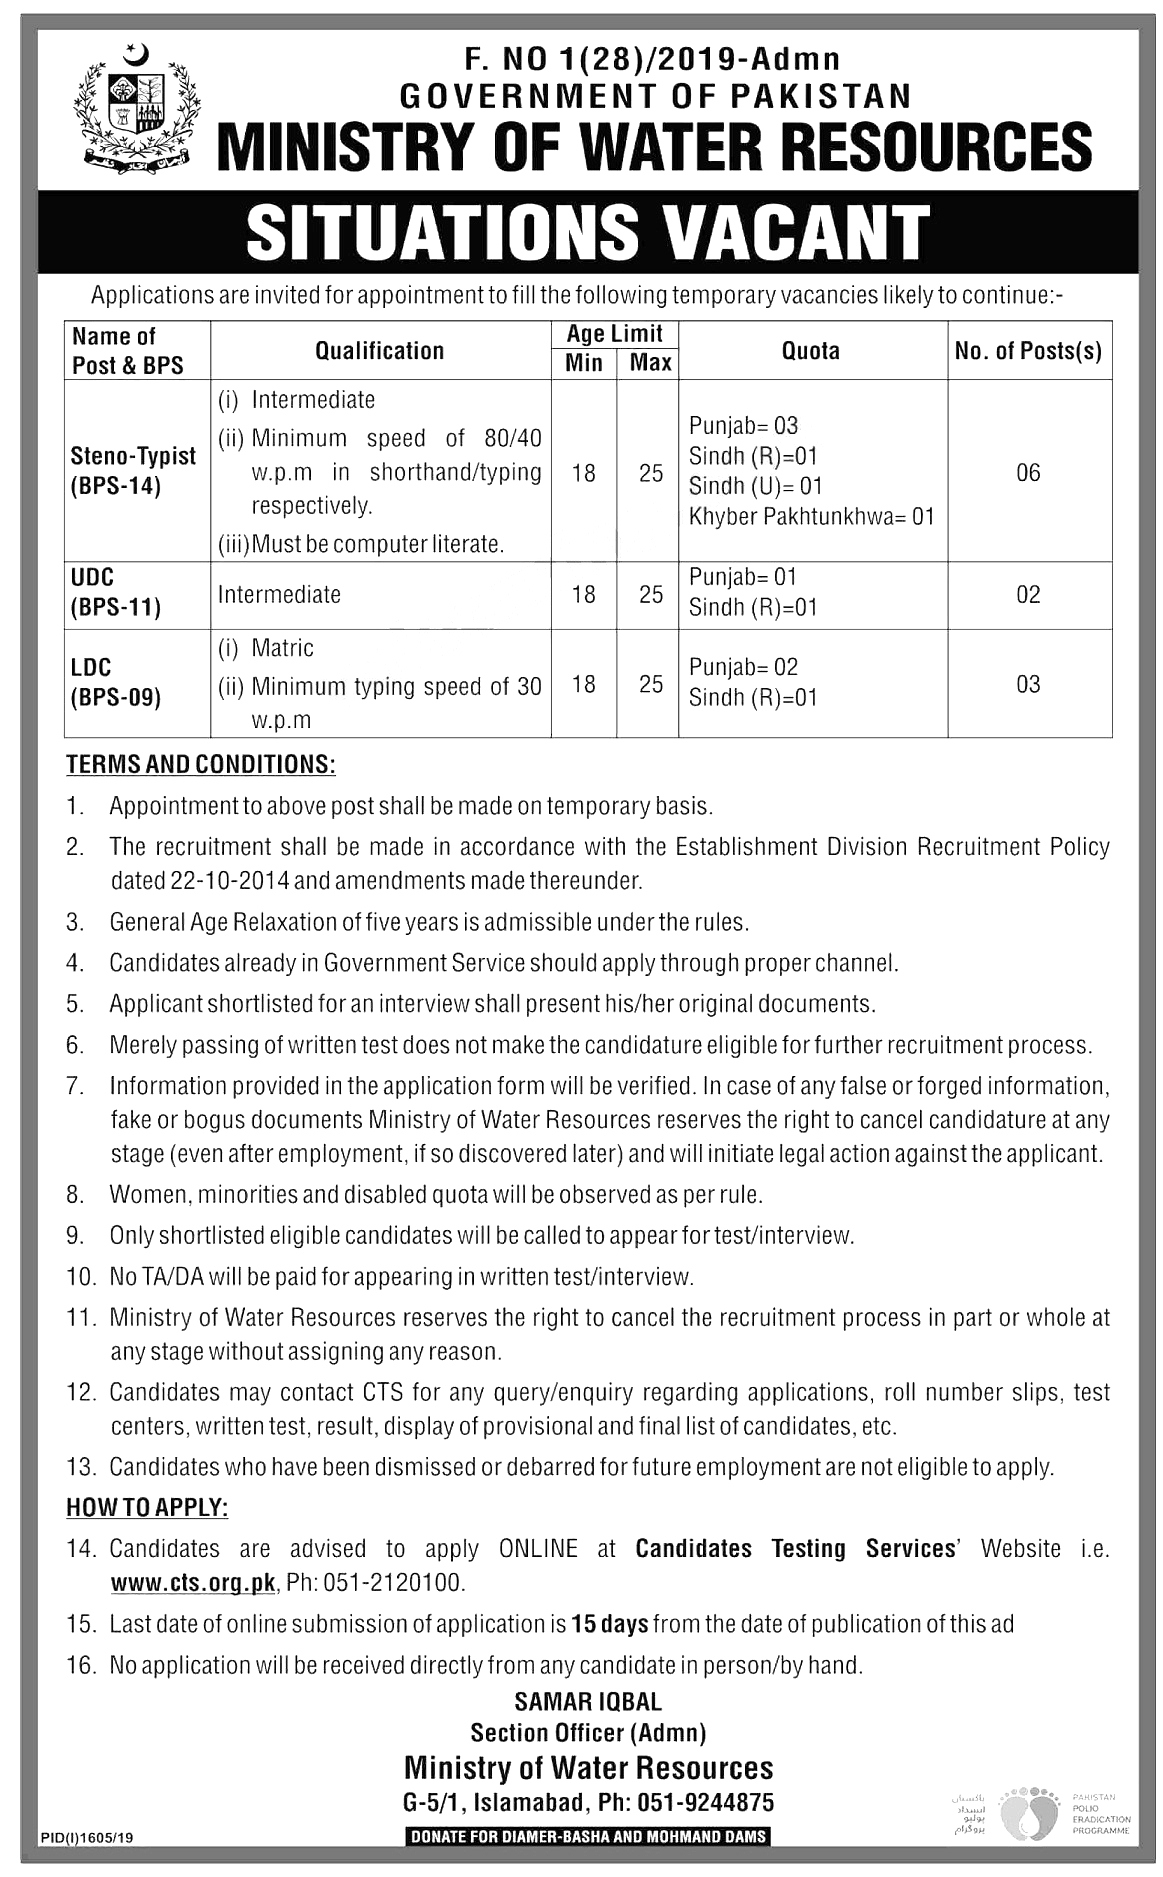 Ministry of Water Resources CTS Jobs 2019 Application Form Roll No Slip